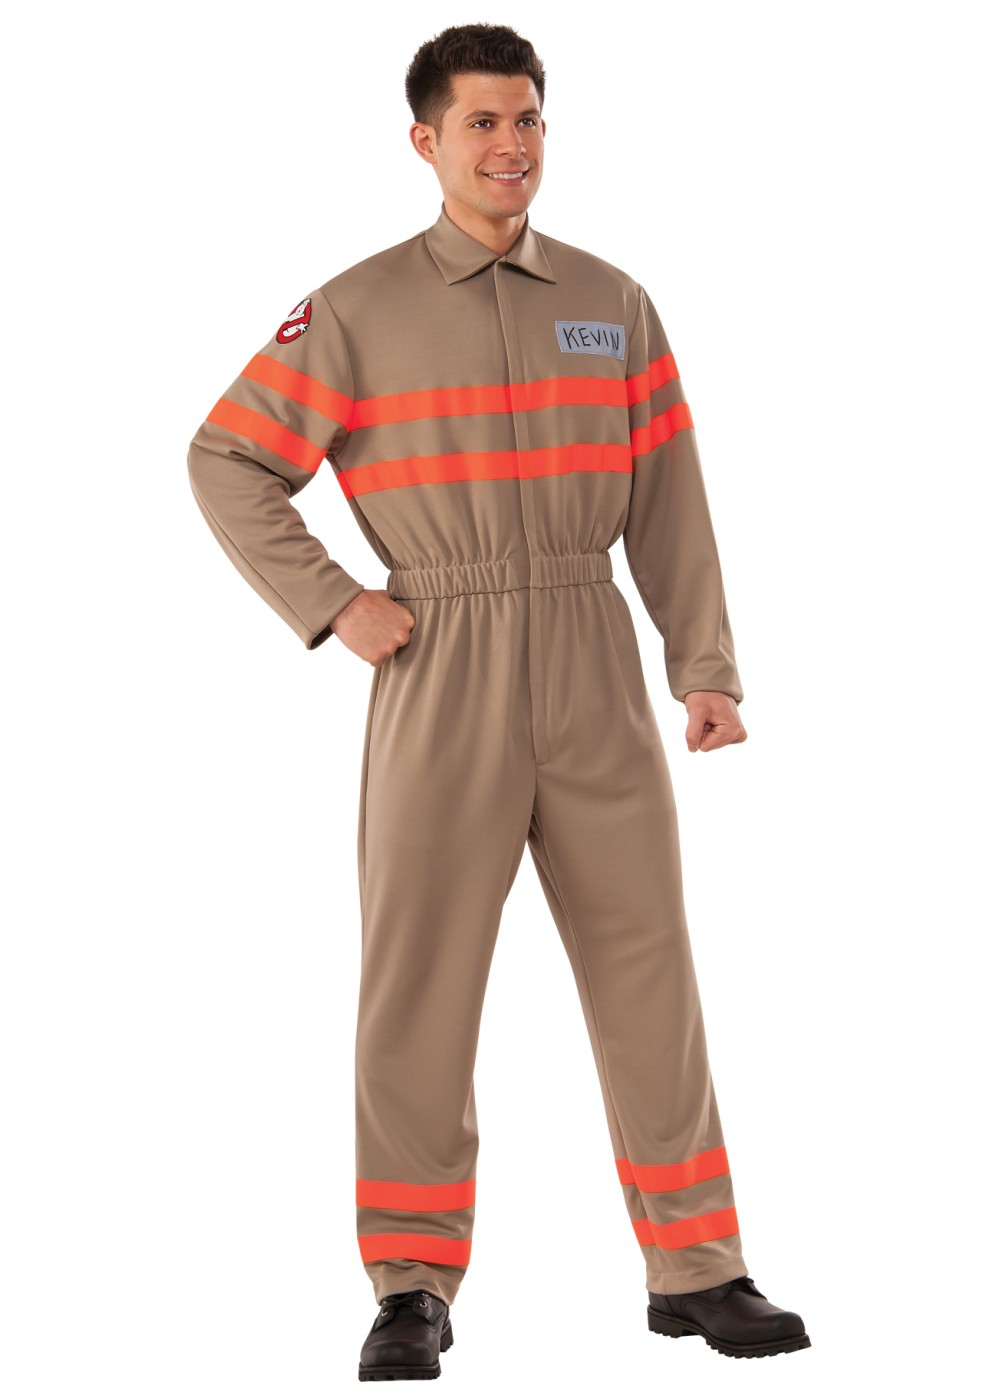 Ghostbuster Kevin Jumpsuit Men Costume - Movie Costumes